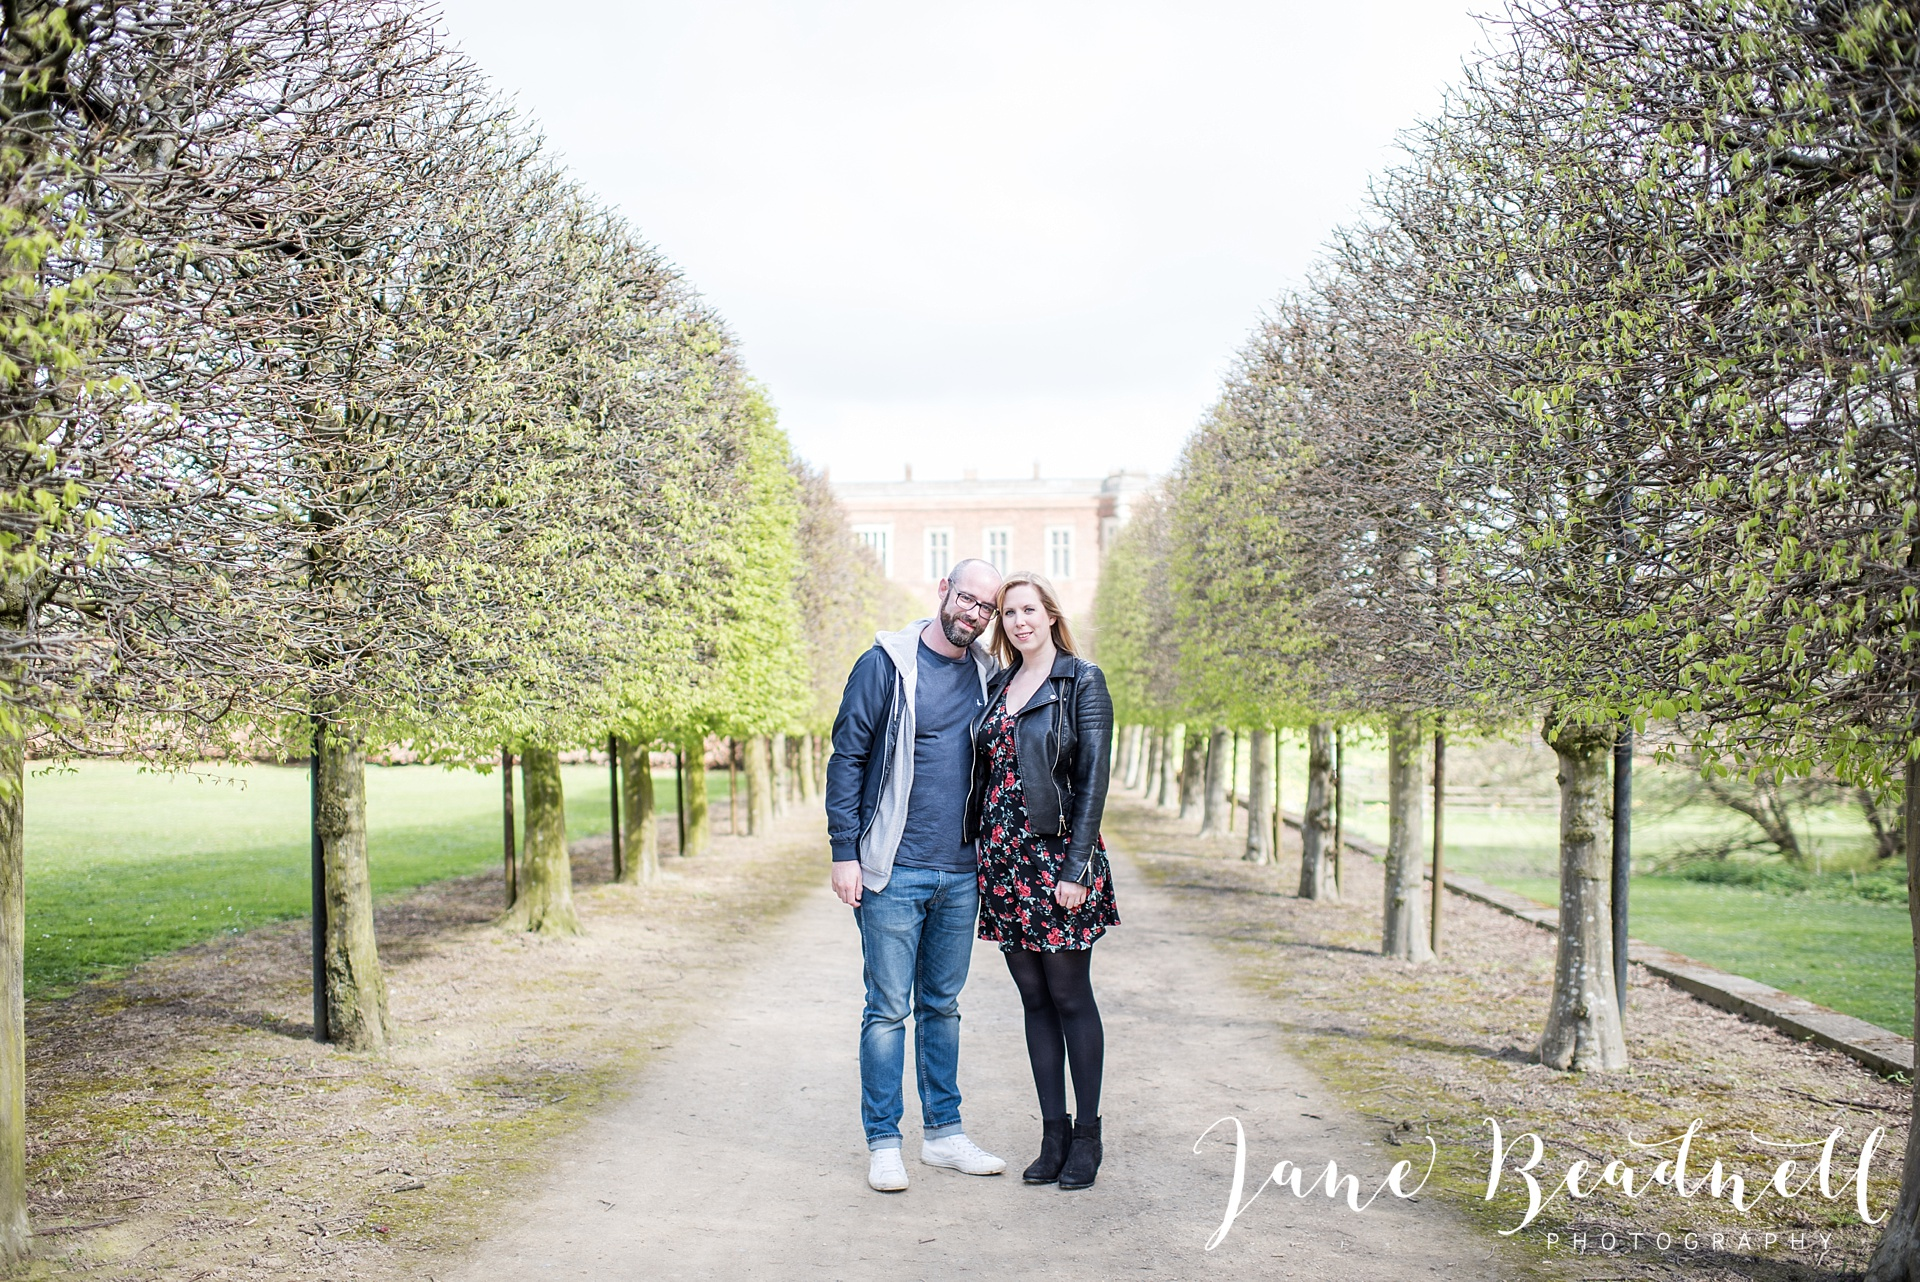 Temple Newsam engagement photography by Jane Beadnell Wedding Photography_0004